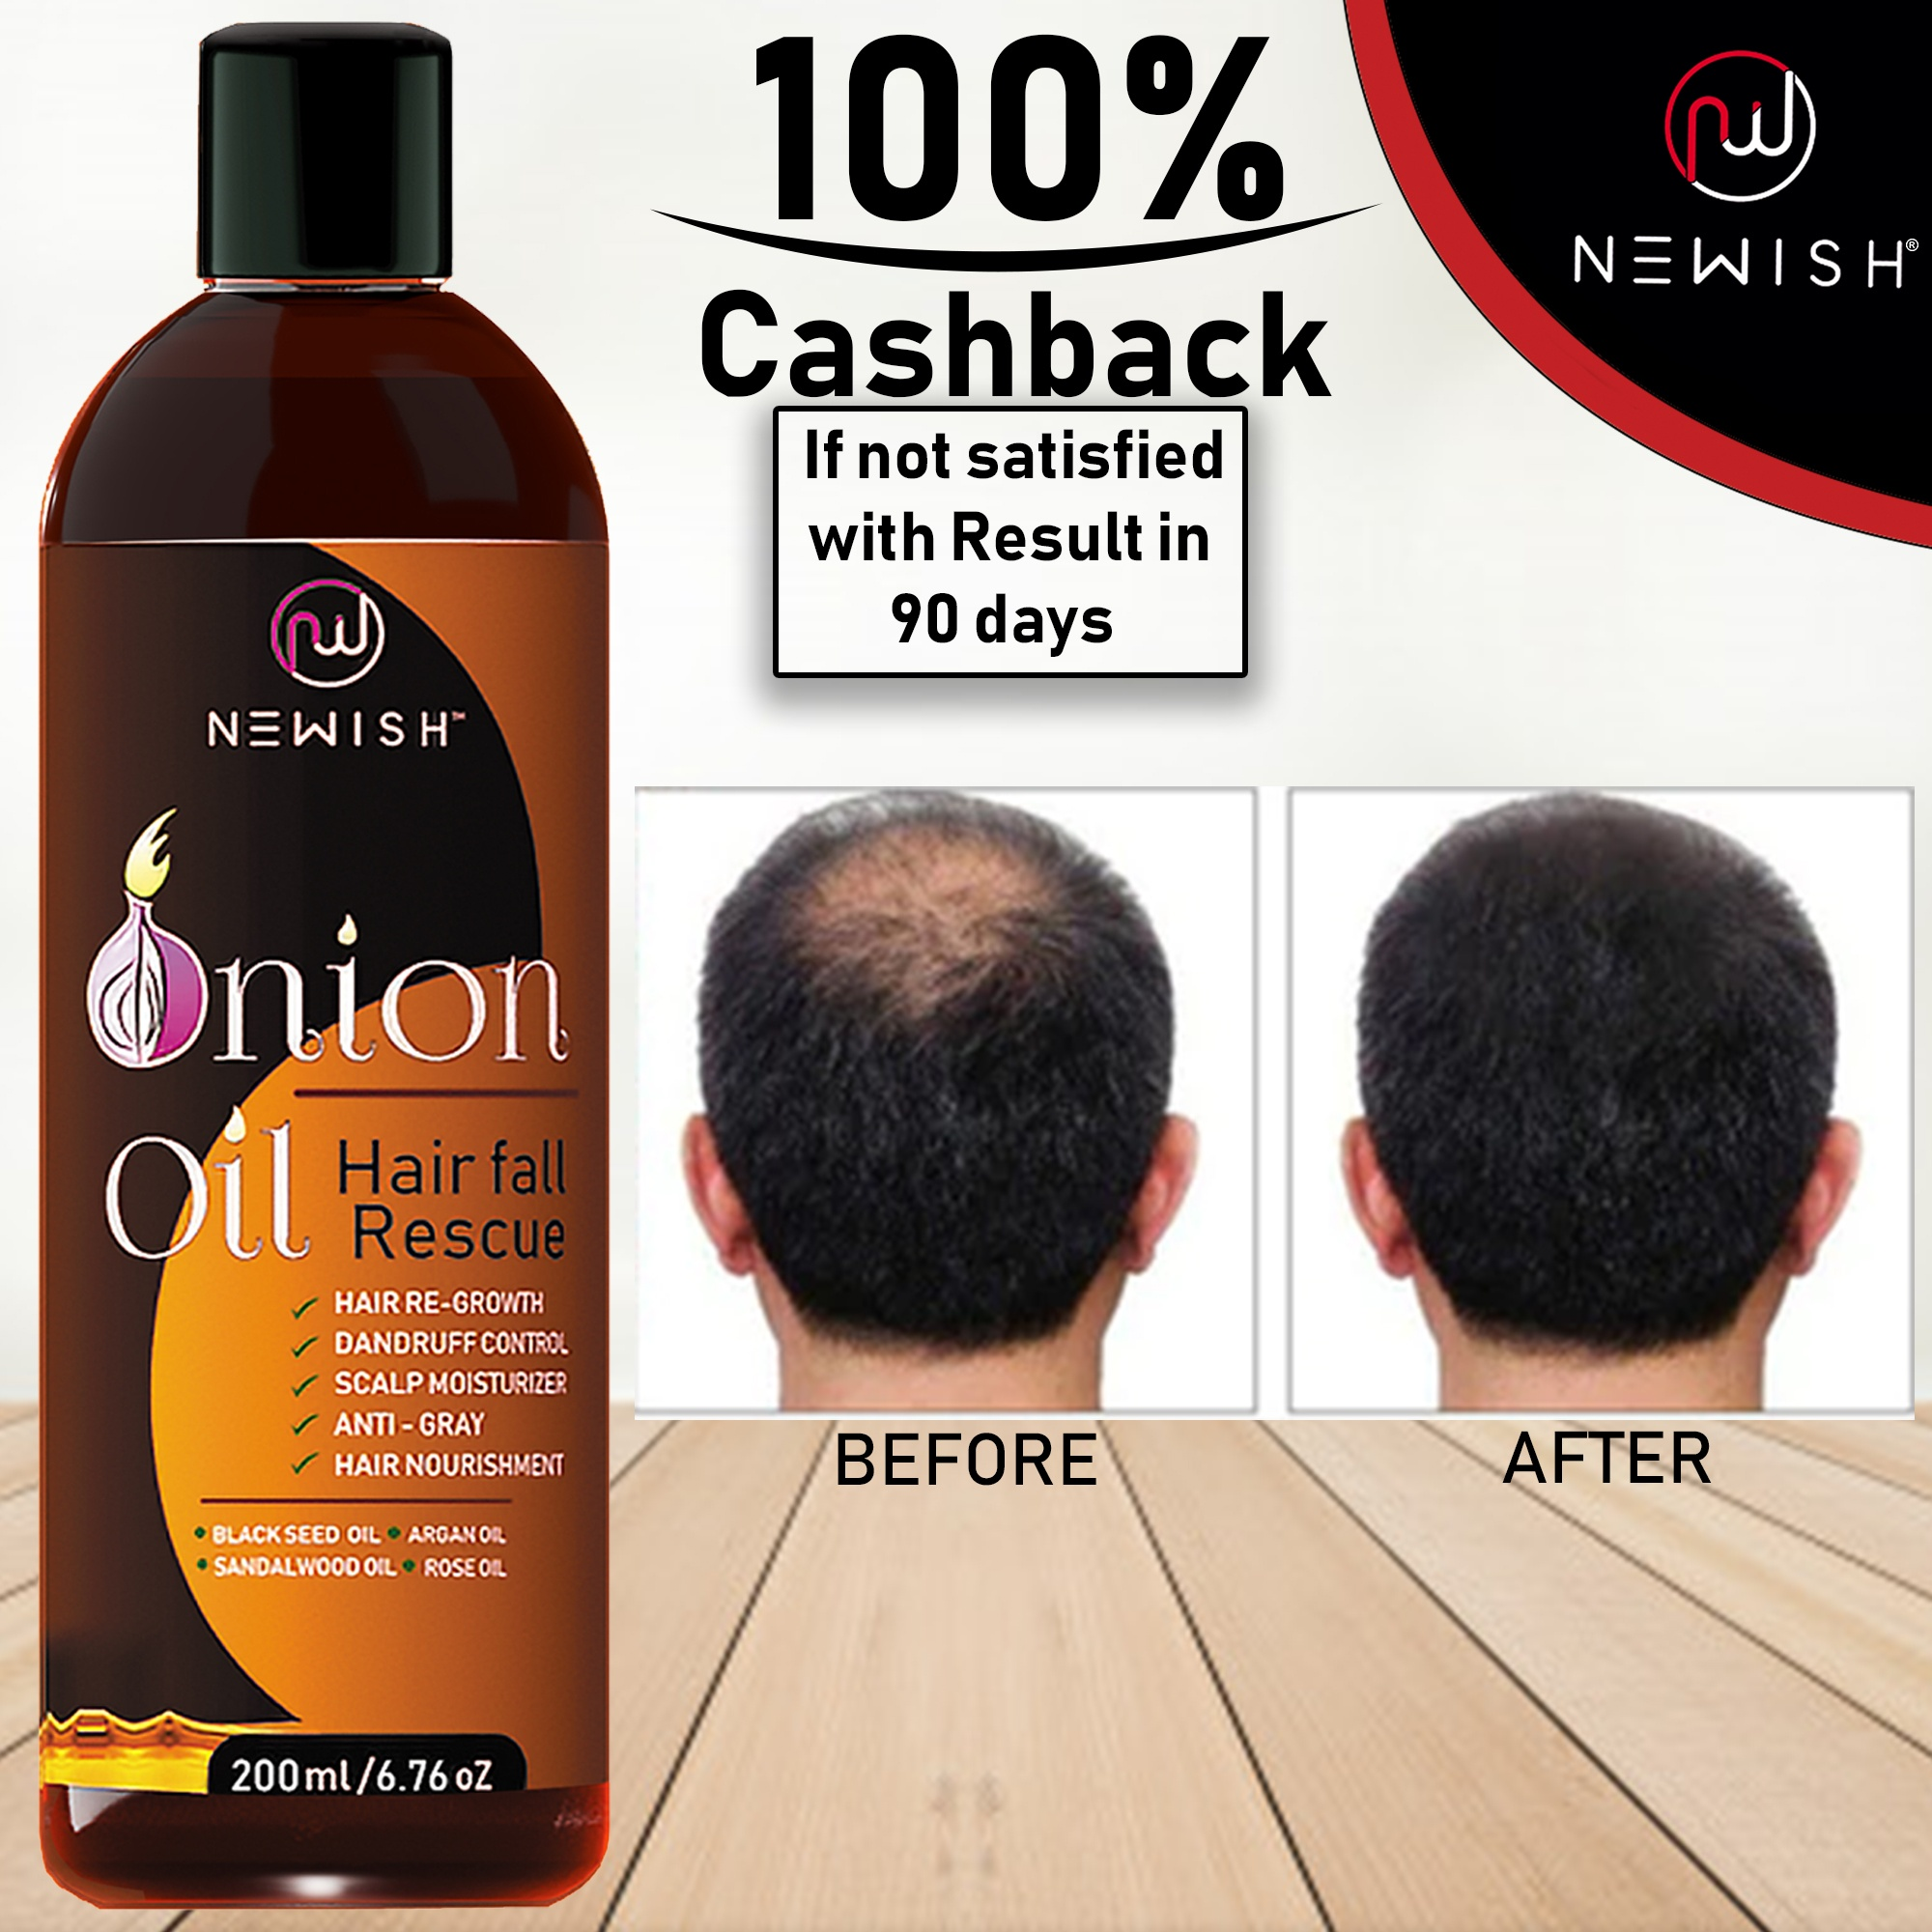 Which hair oil is best to stop premature graying hair? - Quora